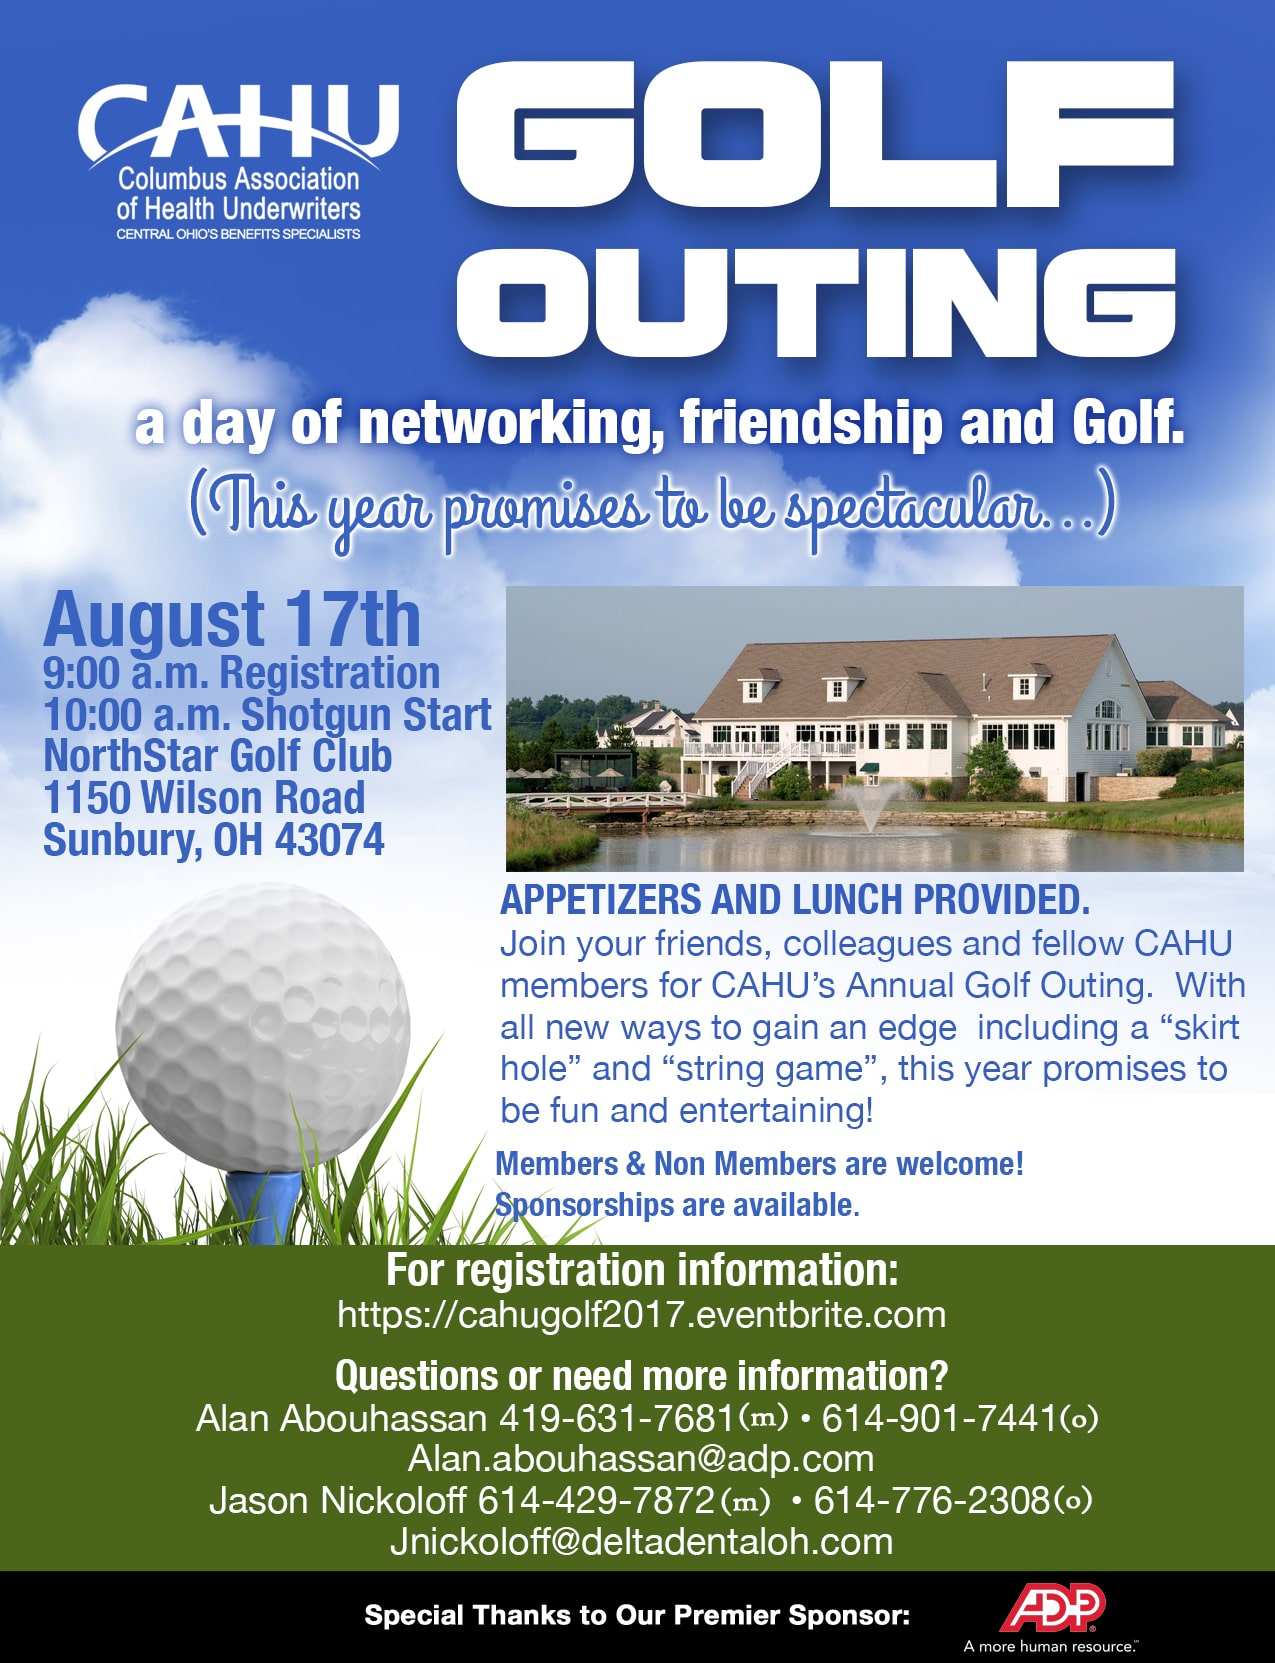 CAHU GOLF OUTING